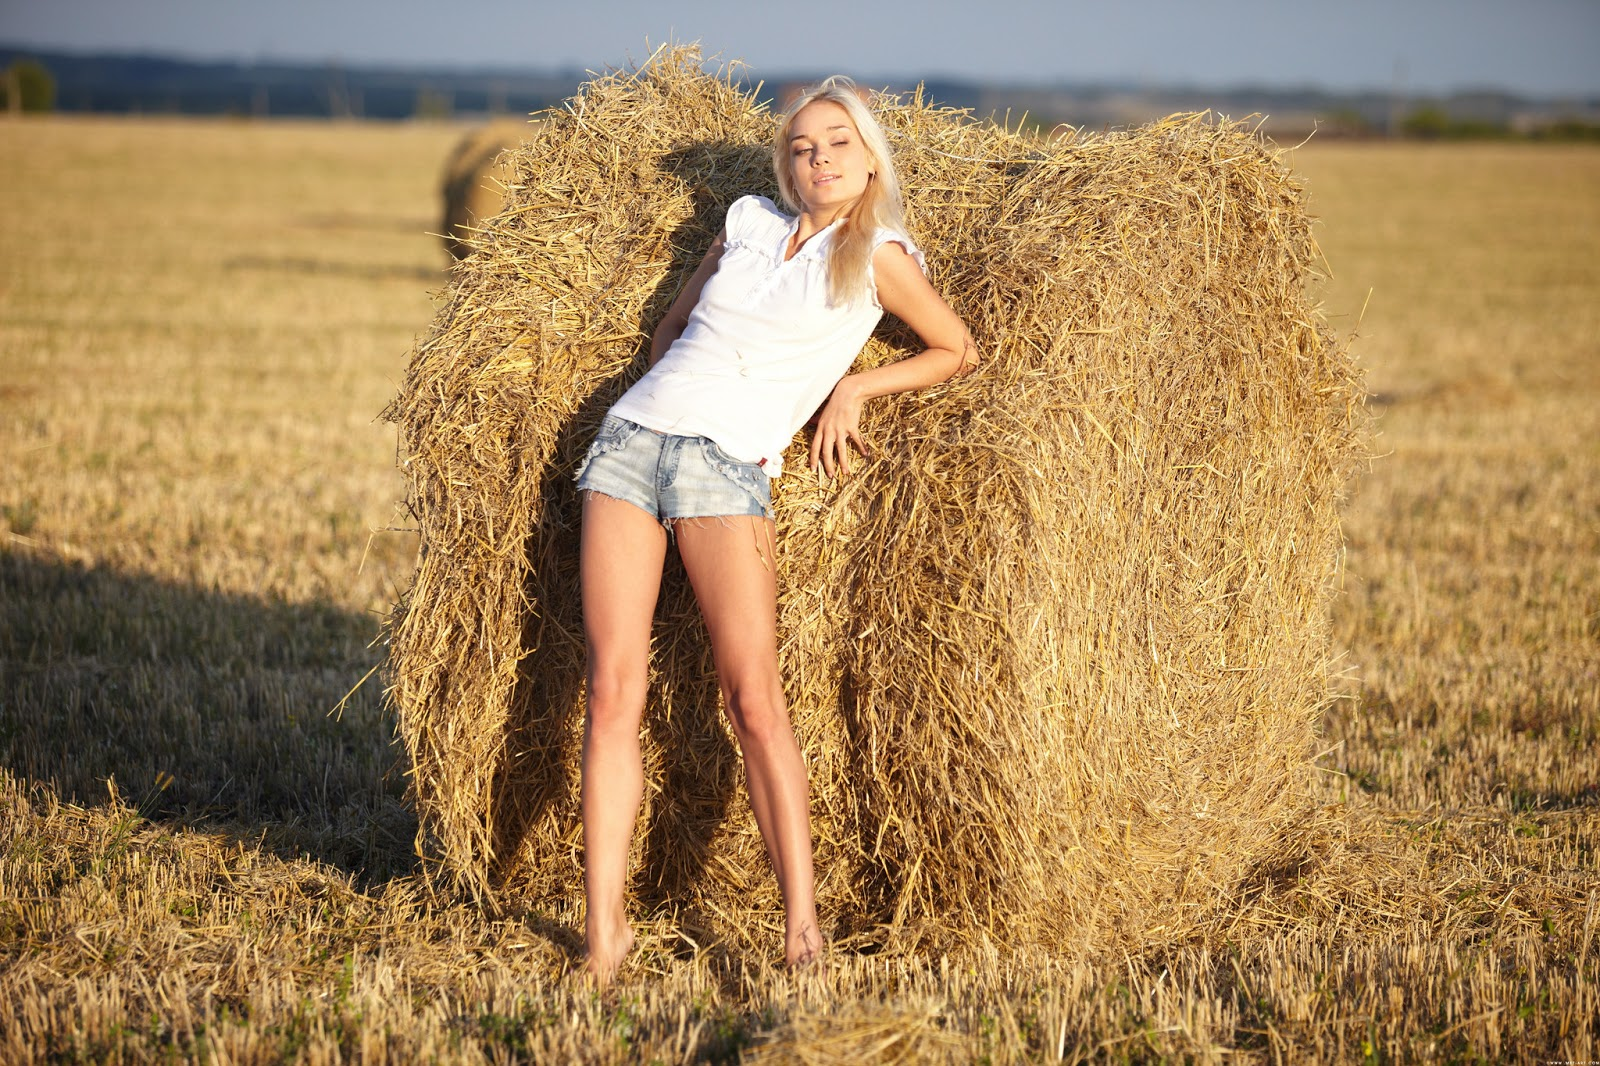 Absolutely agree Farmers daughters short shorts all logical